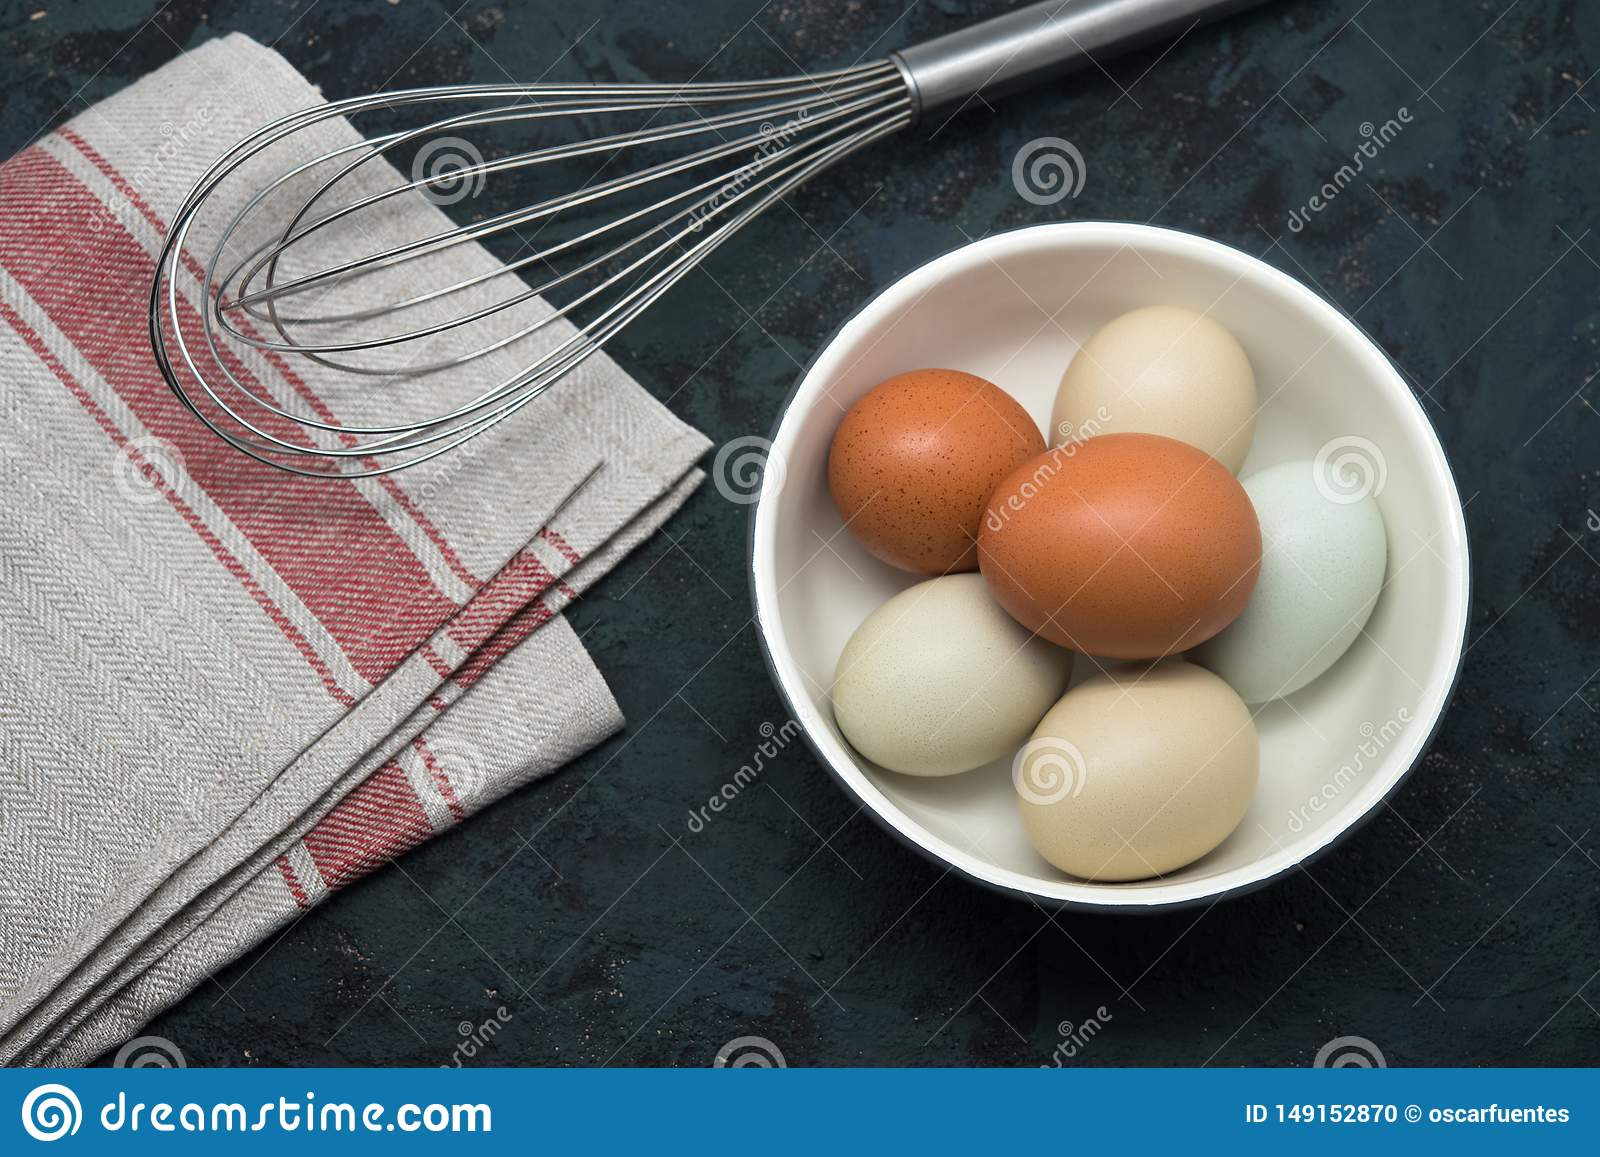 Eggs with beater on table